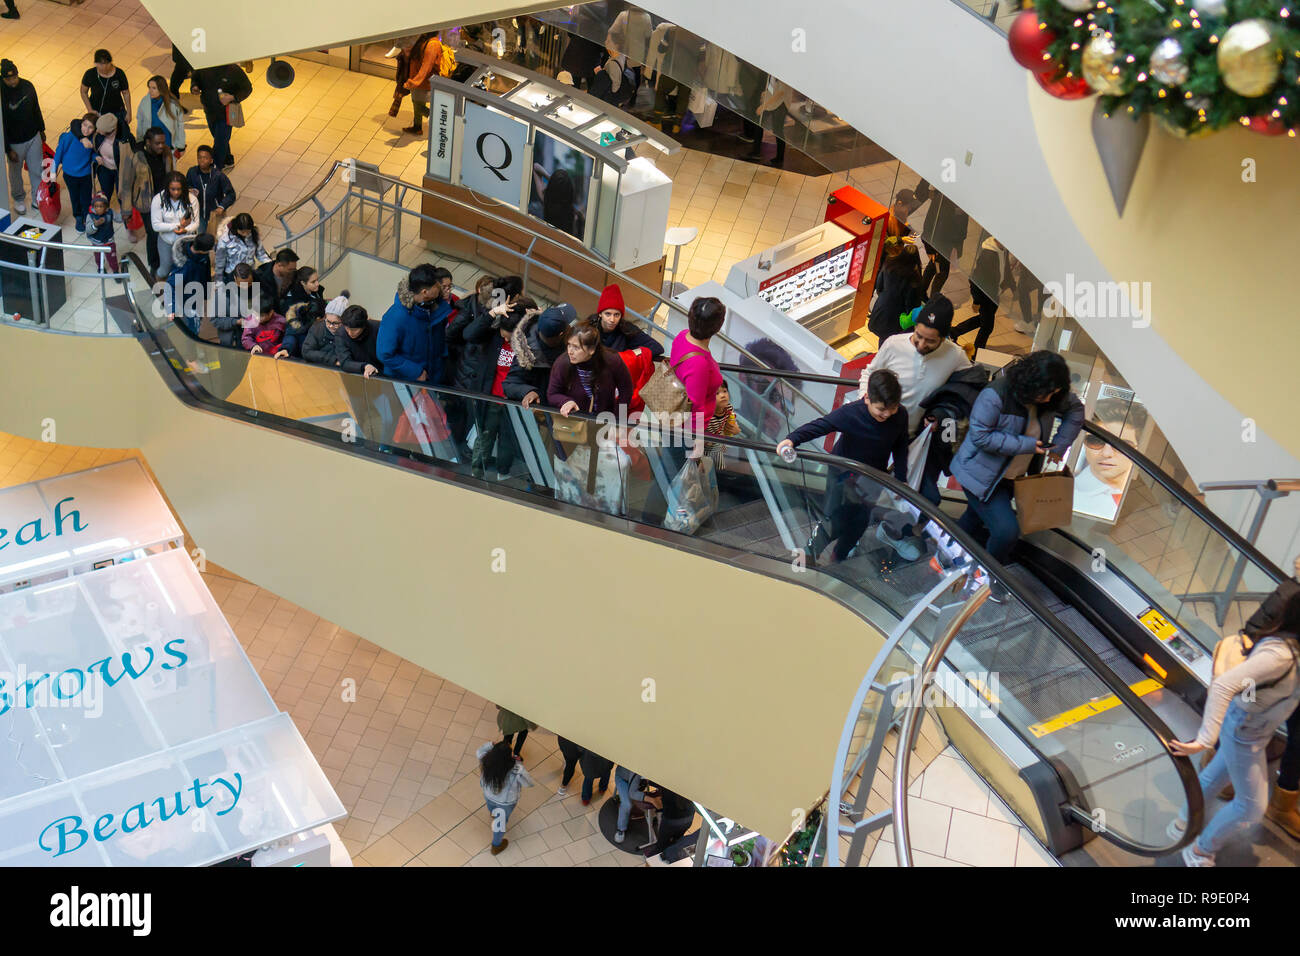 New York, USA. 22 December 2018. 2018 Crowds of last minute shoppers pack the Queens Center Mall in the borough of Queens in New York on the so-called Super Saturday. the Saturday prior to Christmas, December 22, 2018. Retail analysts are predicting Super Saturday sales to surpass Black Friday by over $2 billion. (© Richard B. Levine) Credit: Richard Levine/Alamy Live News - Stock Image